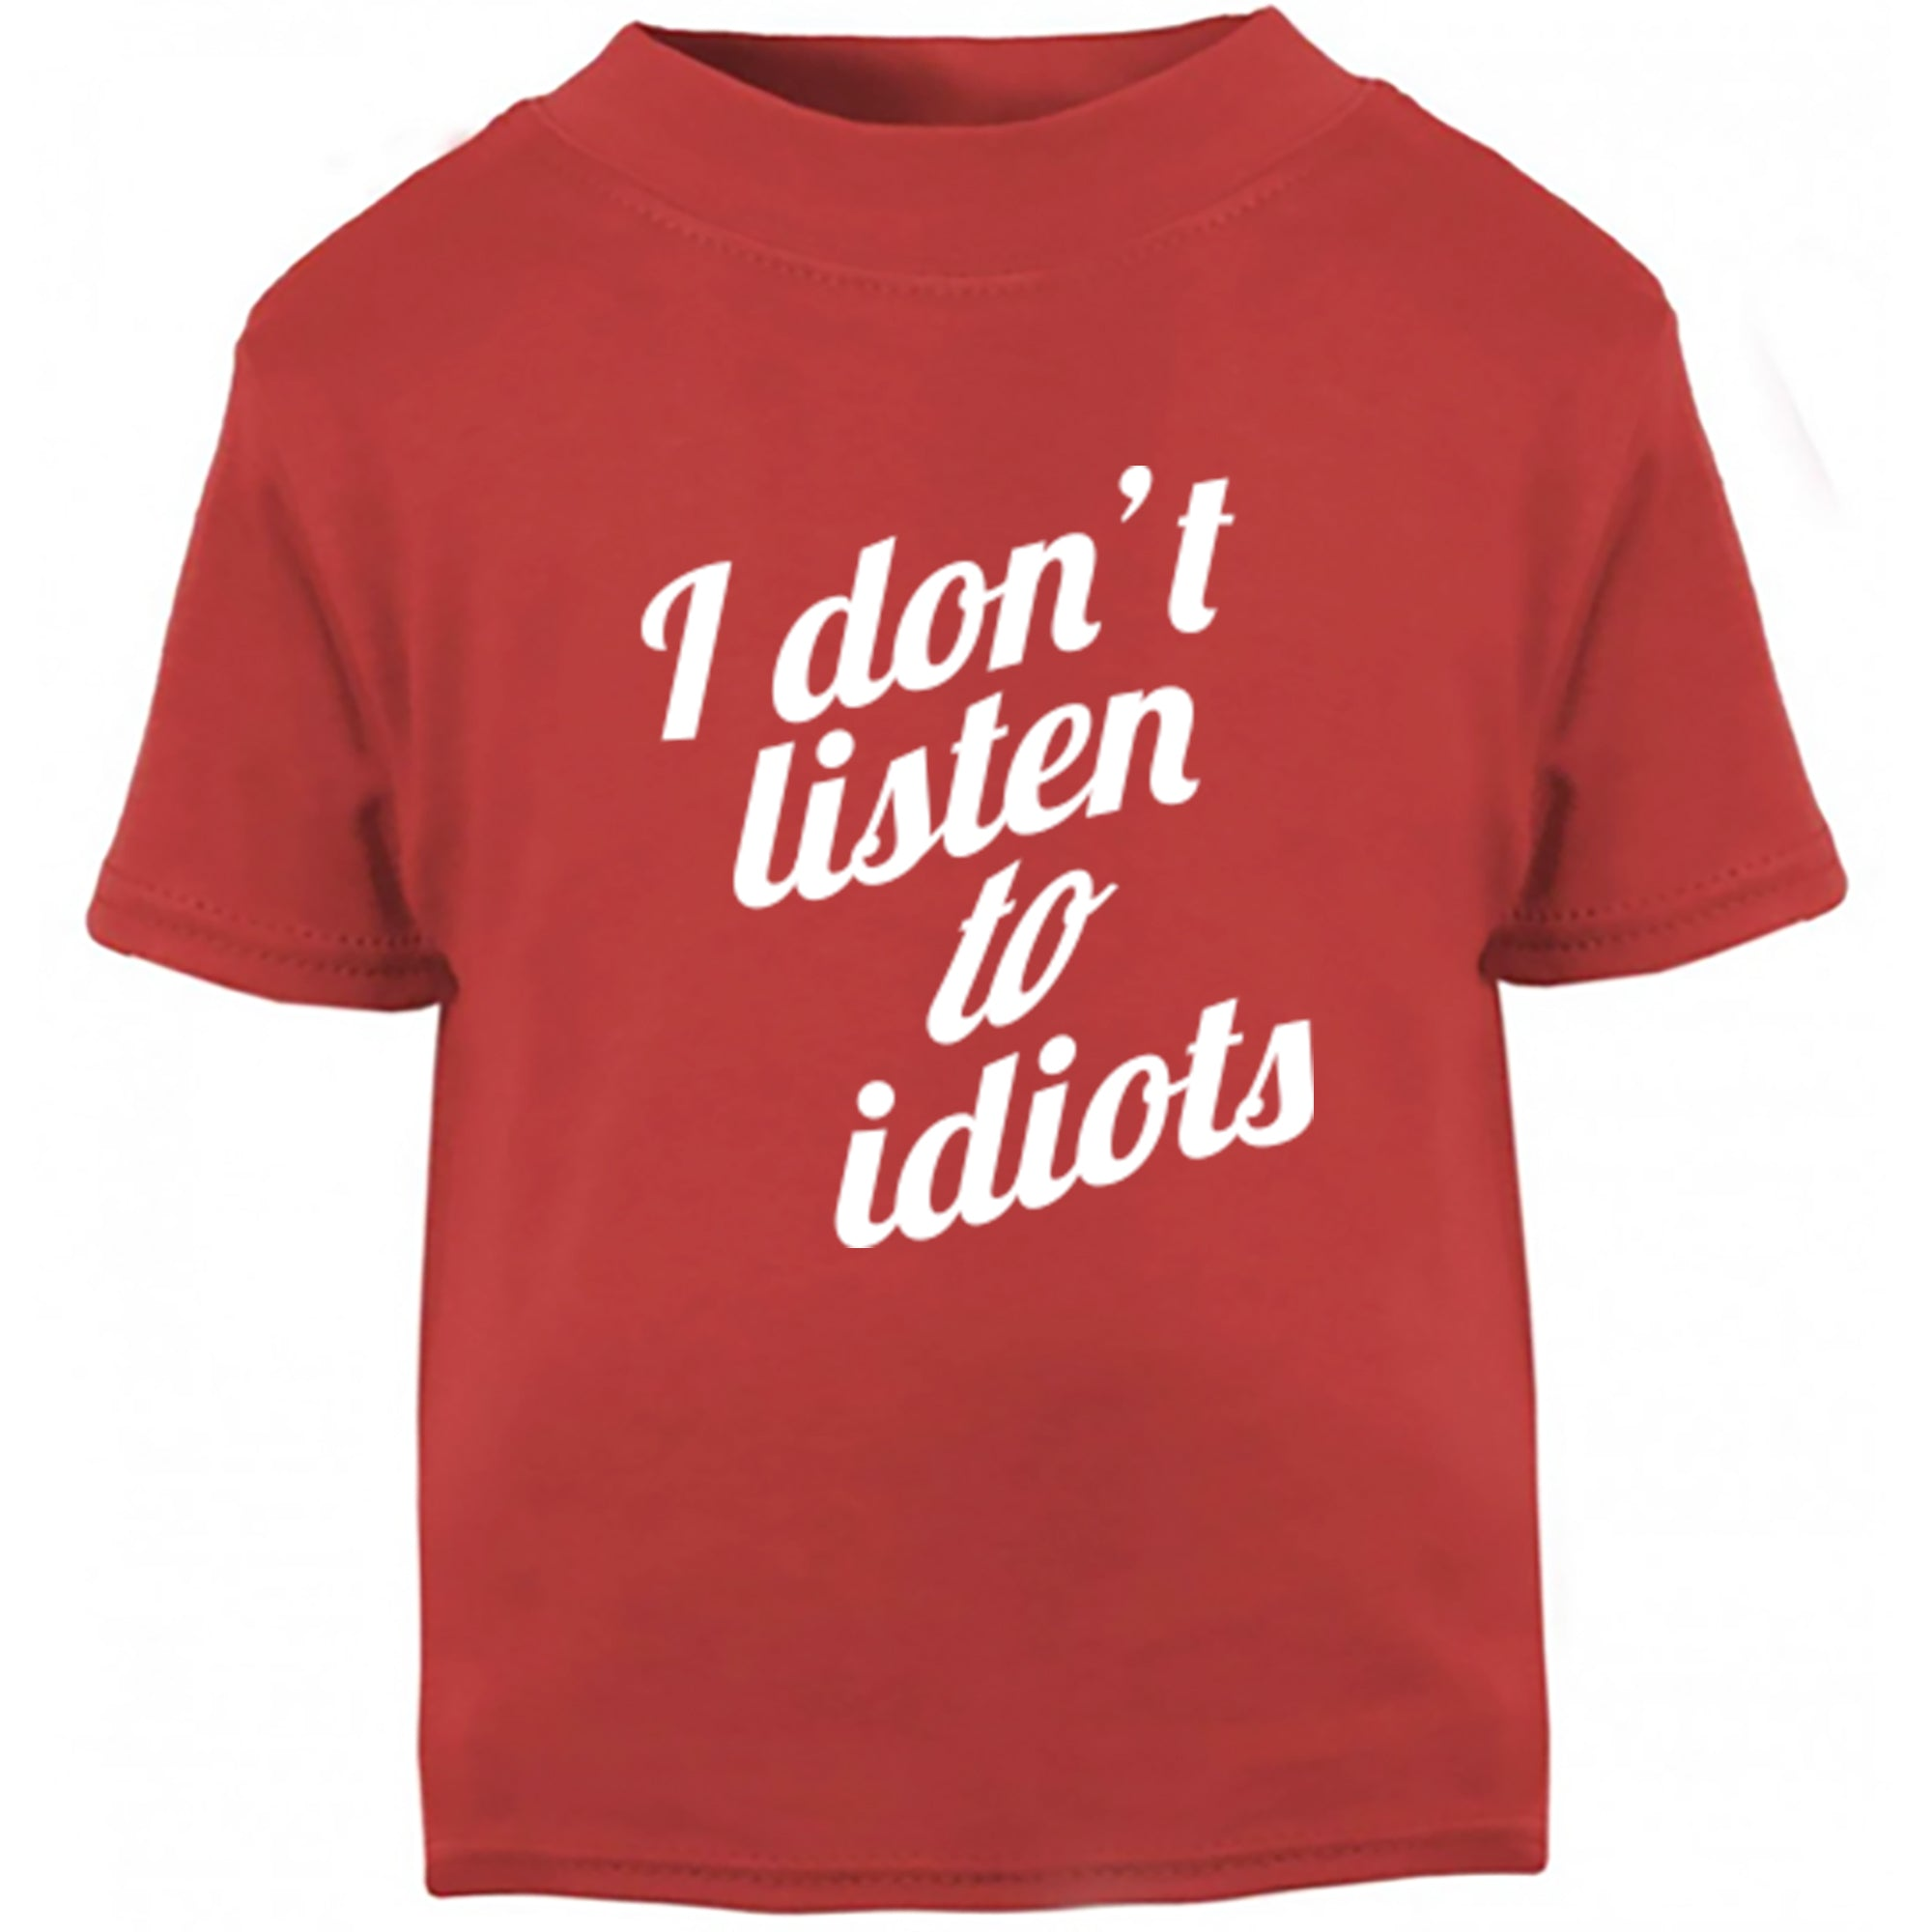 I Don't Listen To Idiots Childrens Ages 3/4-12/14 Unisex Fit T-Shirt S0350 - Illustrated Identity Ltd.